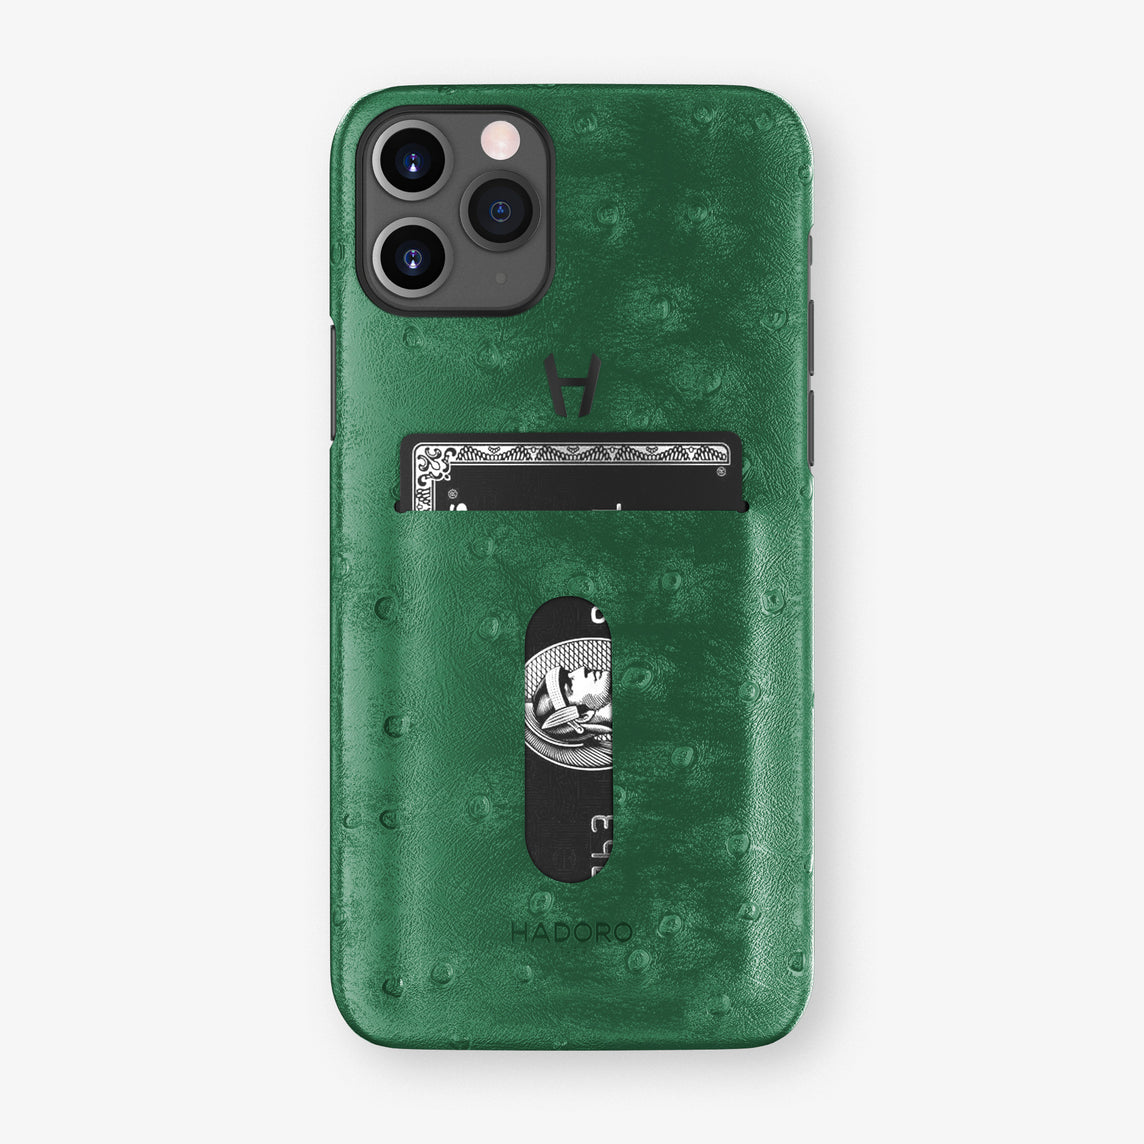 Ostrich Card Holder Case iPhone 11 Pro | Green - Black